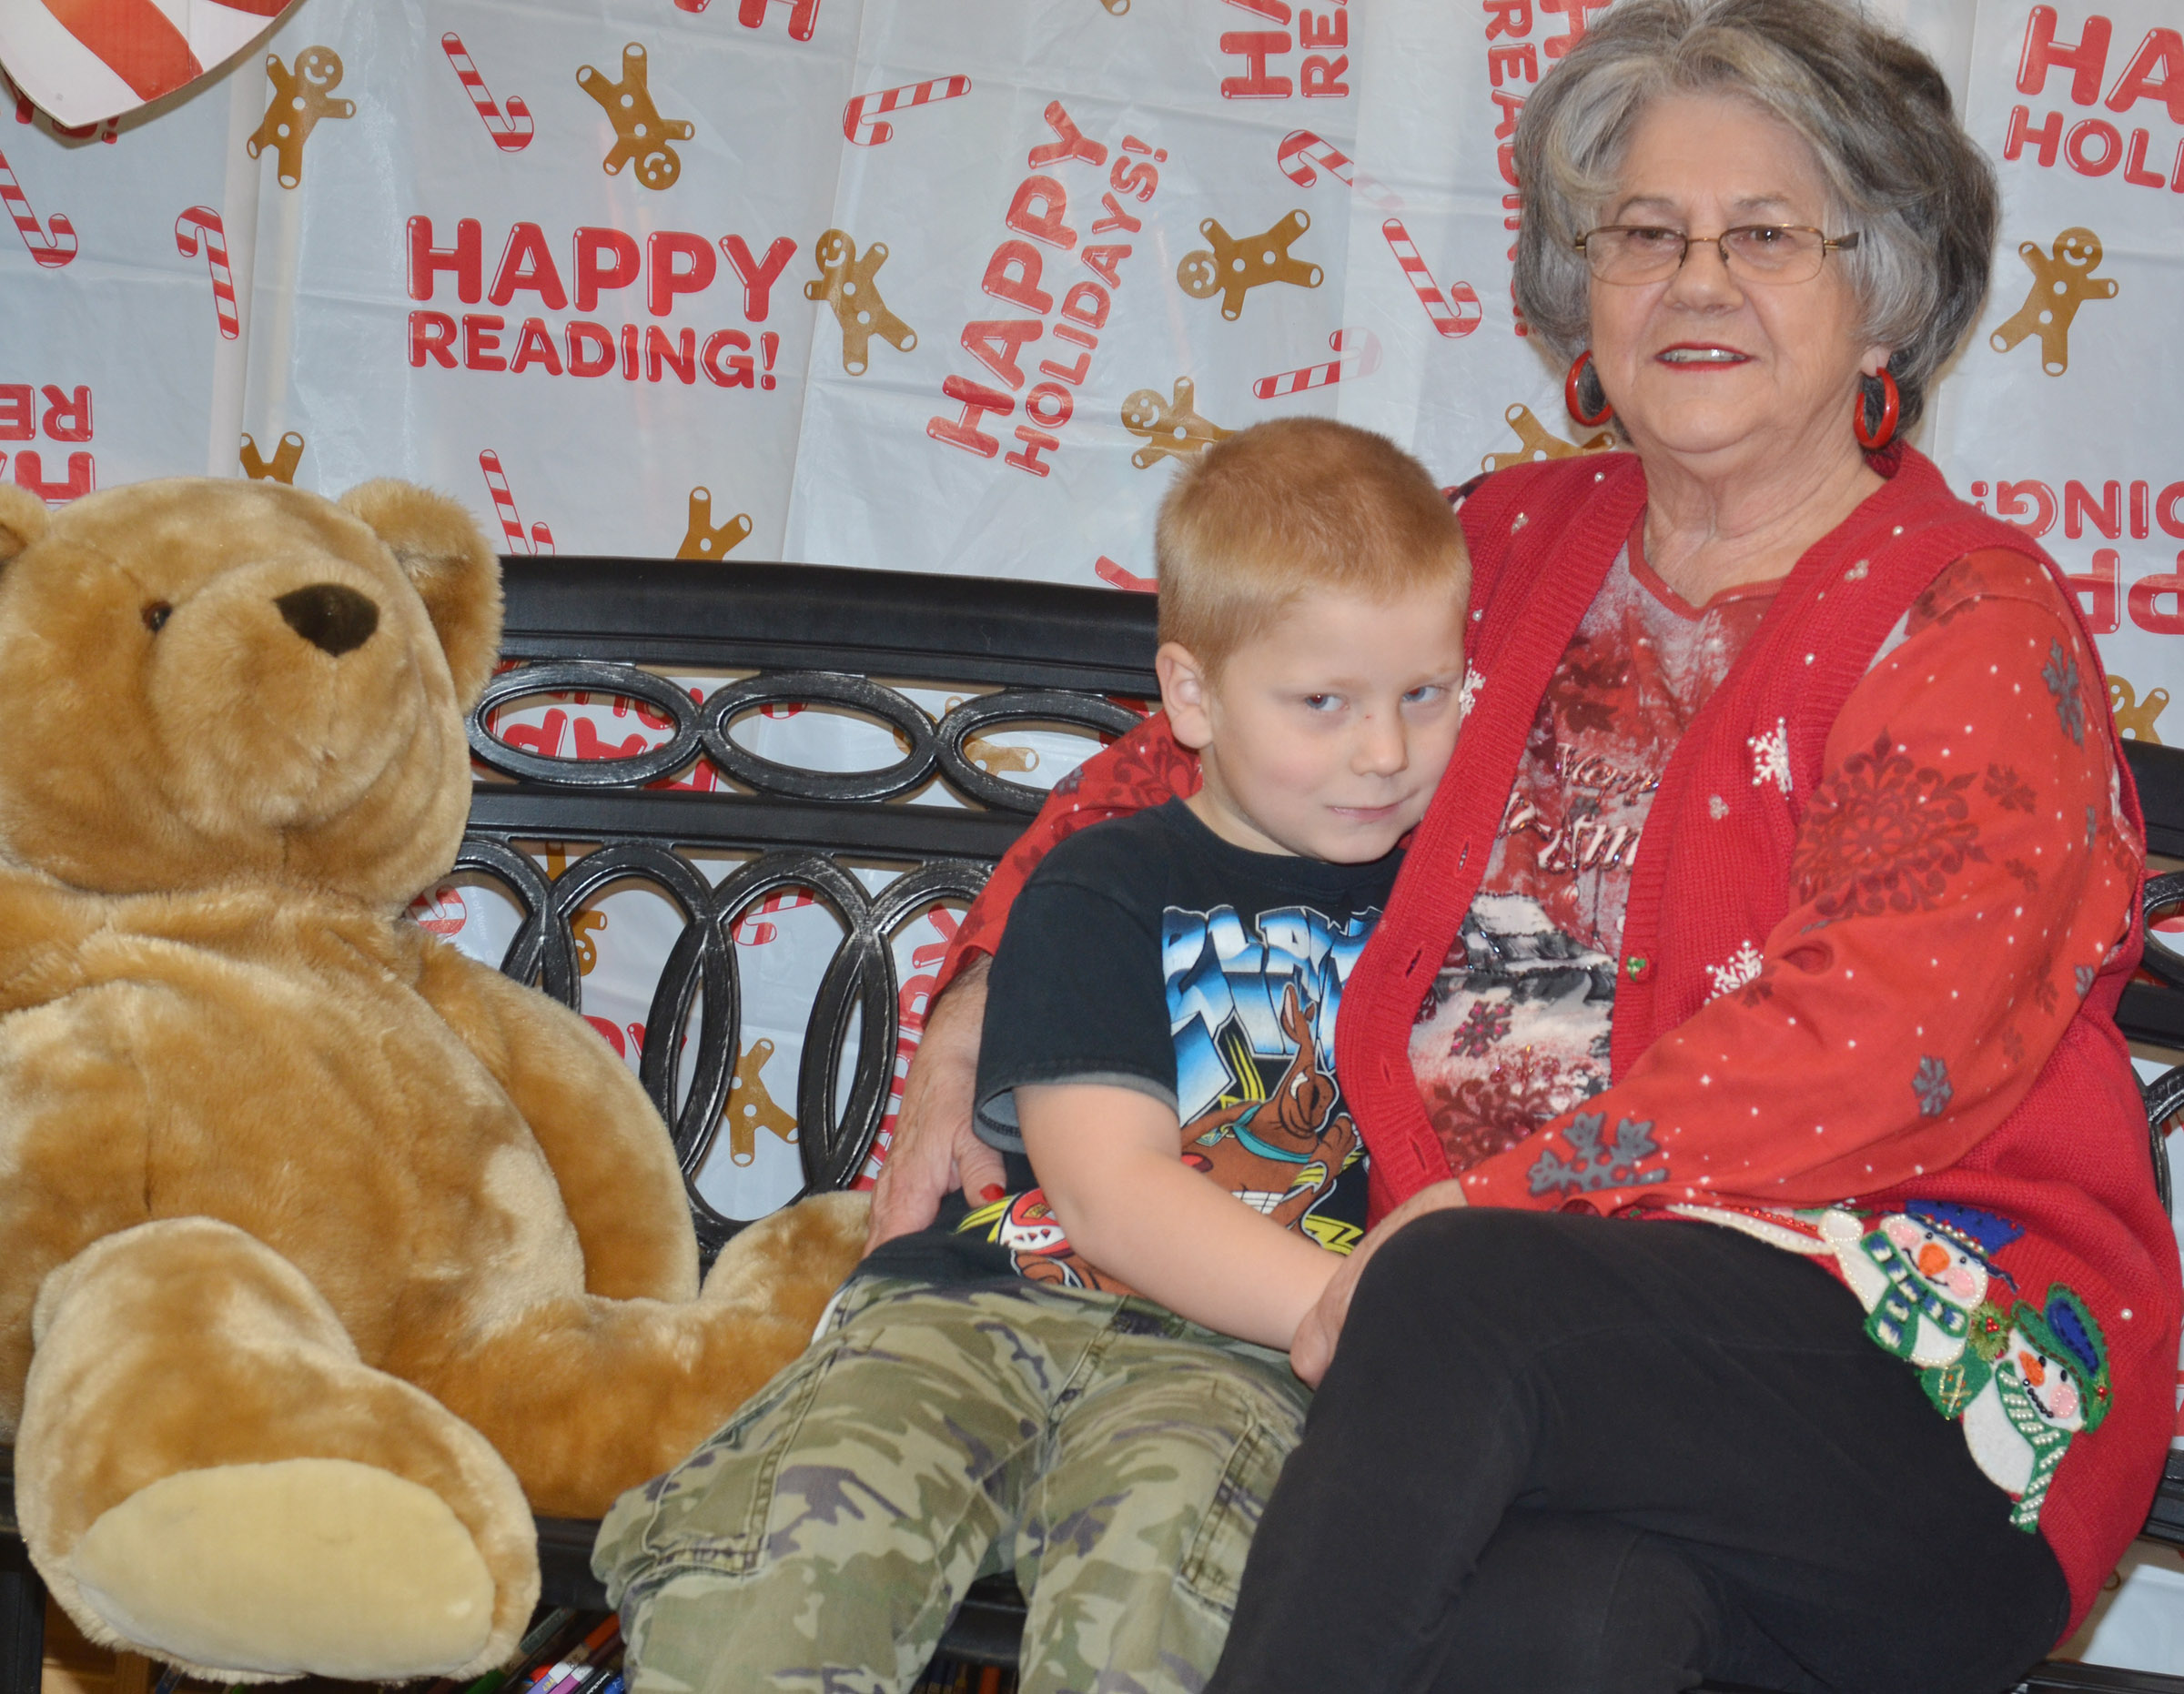 CES first-grader Ben Parrott snuggles with his grandmother, Janis Turner, as they take a photo together.